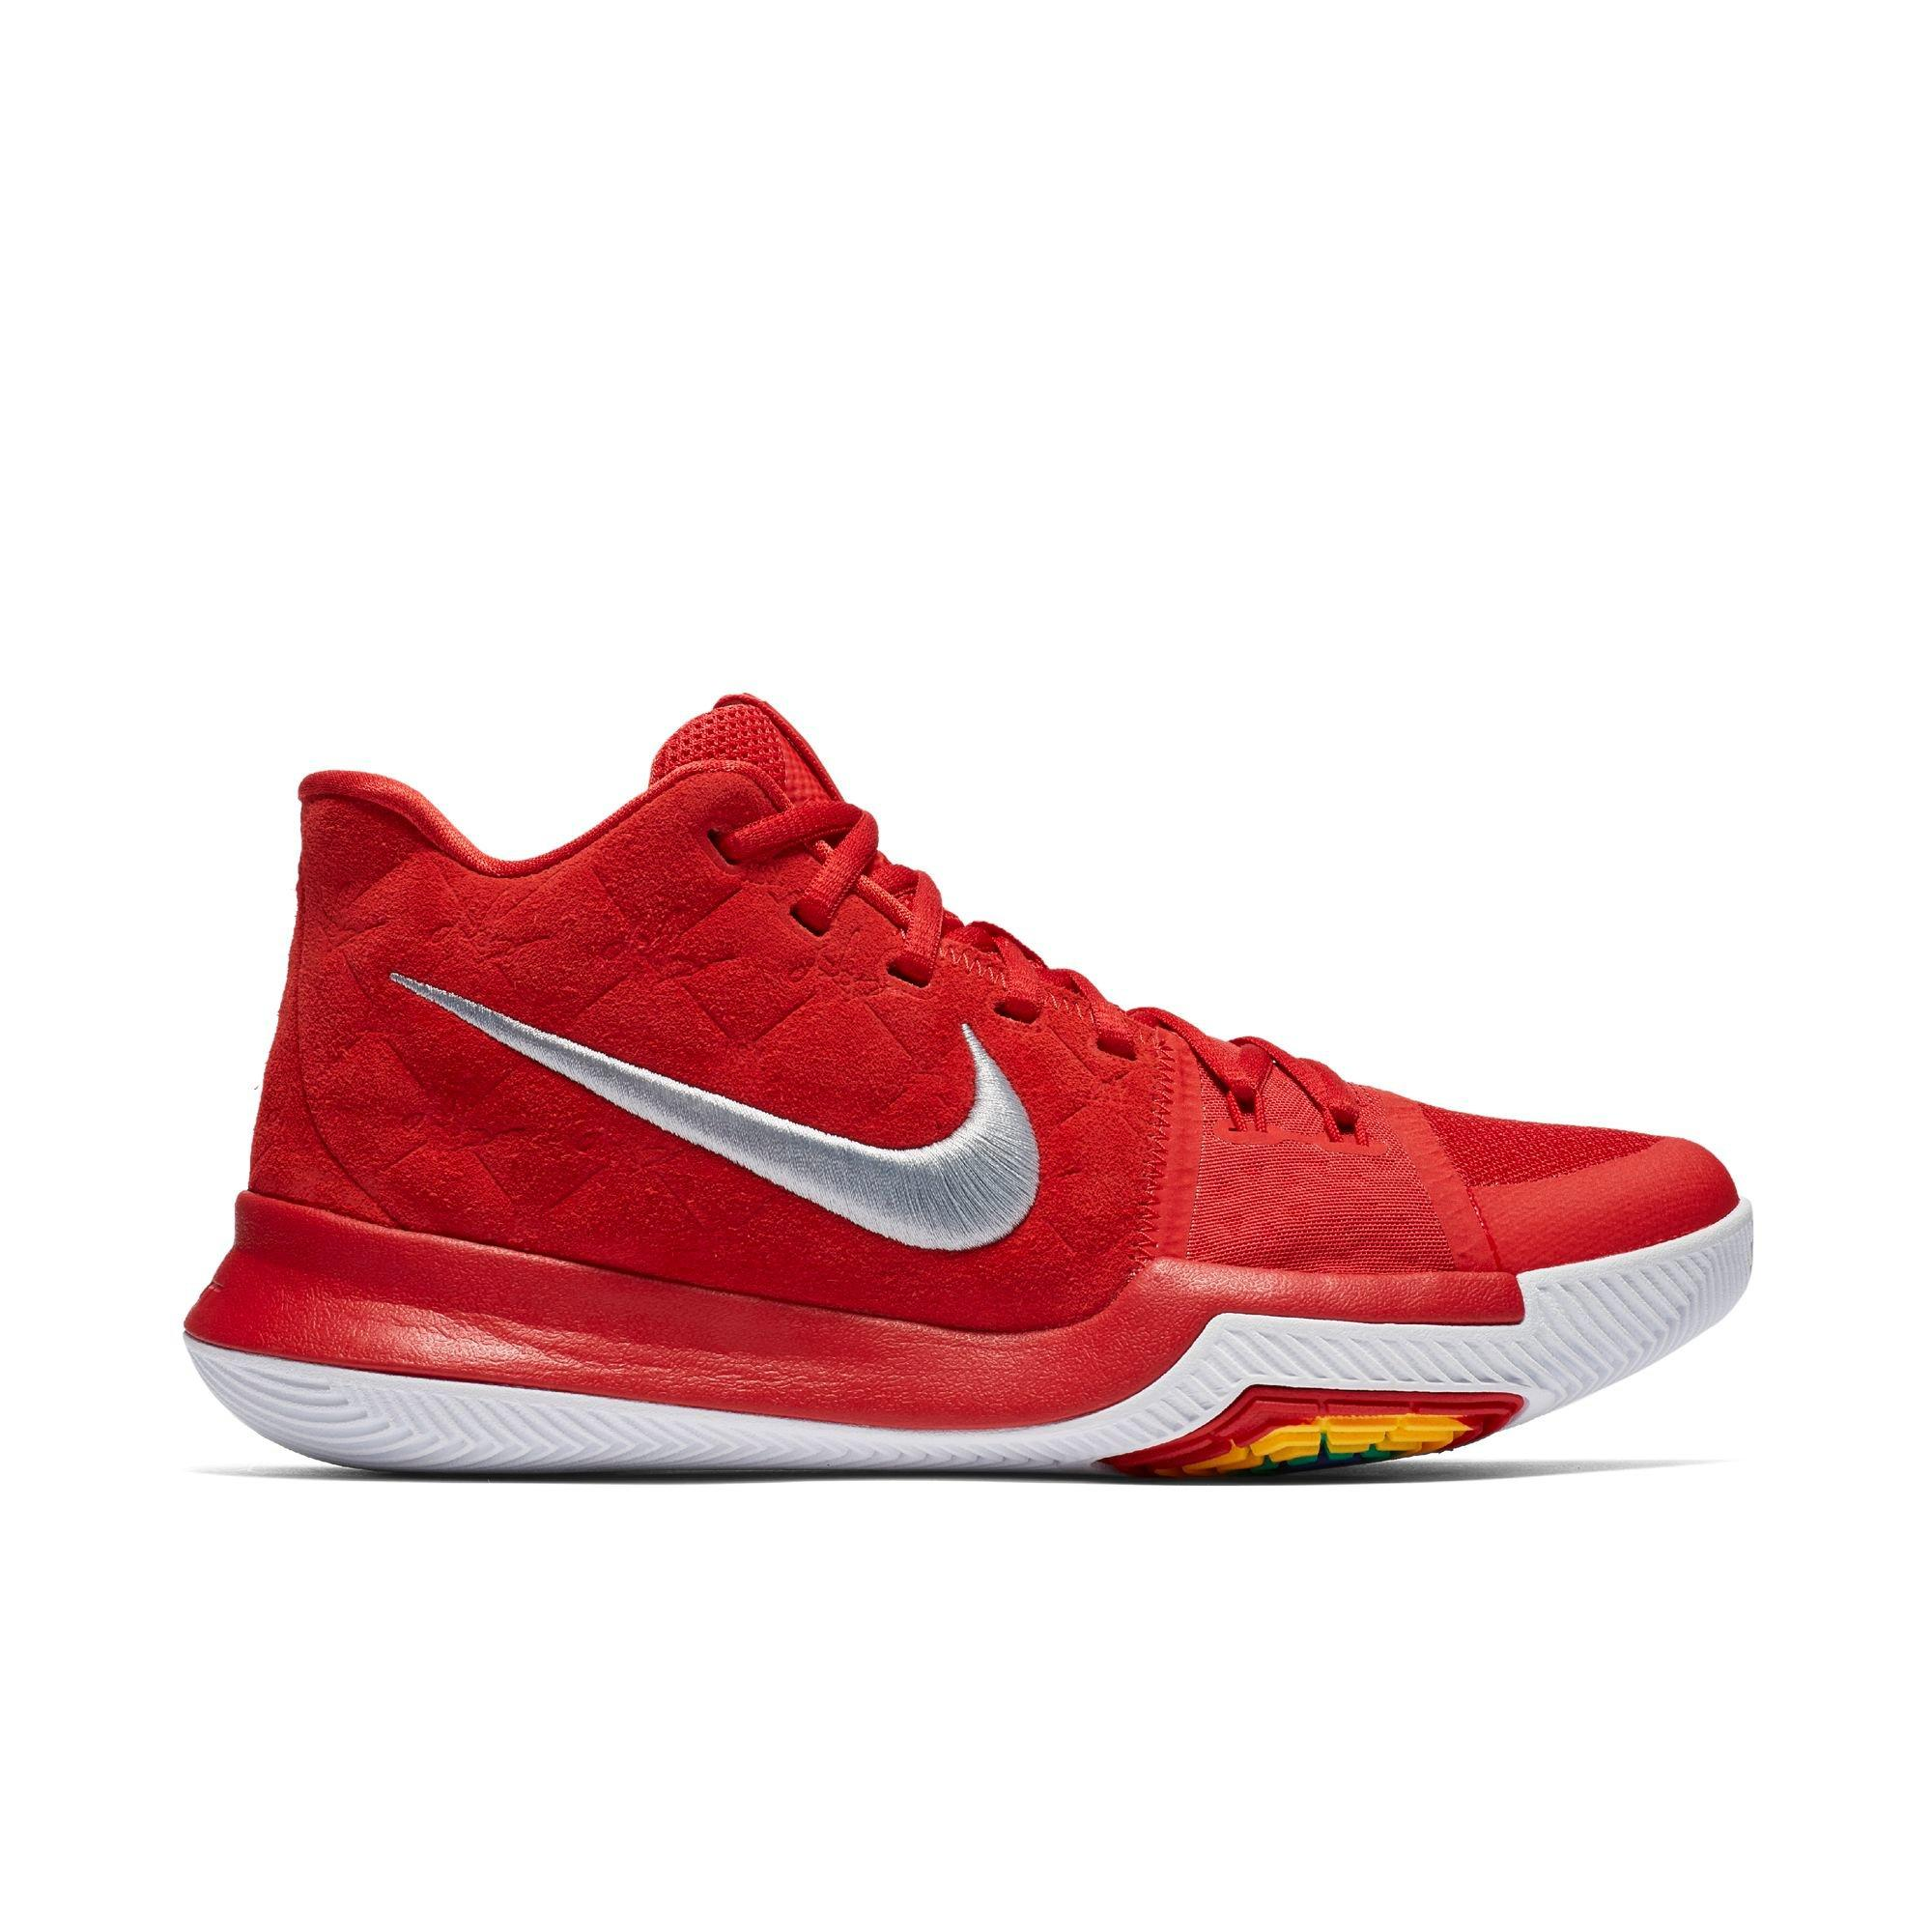 Free Shipping No Minimum. 5 out of 5 stars. Read reviews. (1). Nike Kyrie  ...